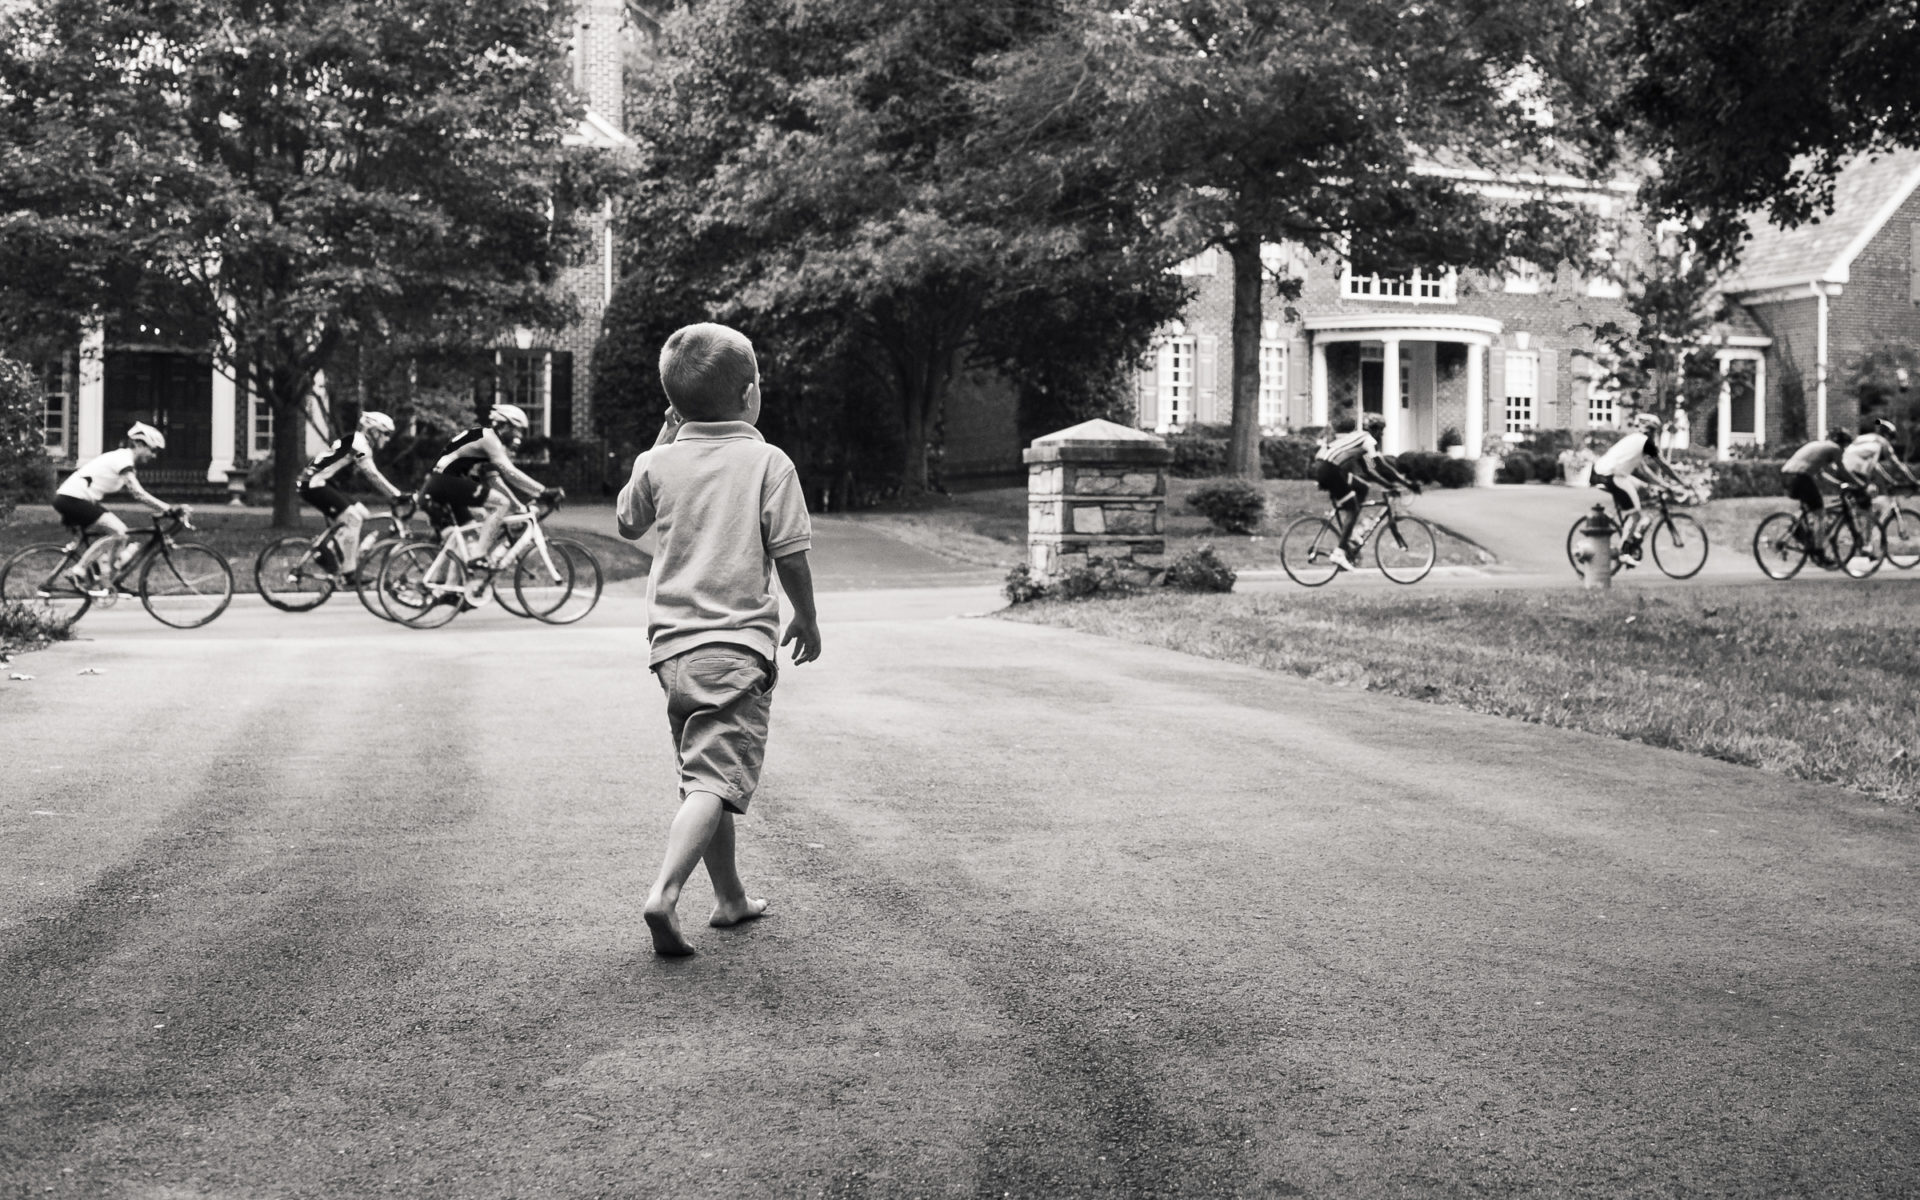 boy watching large troupe of bikers